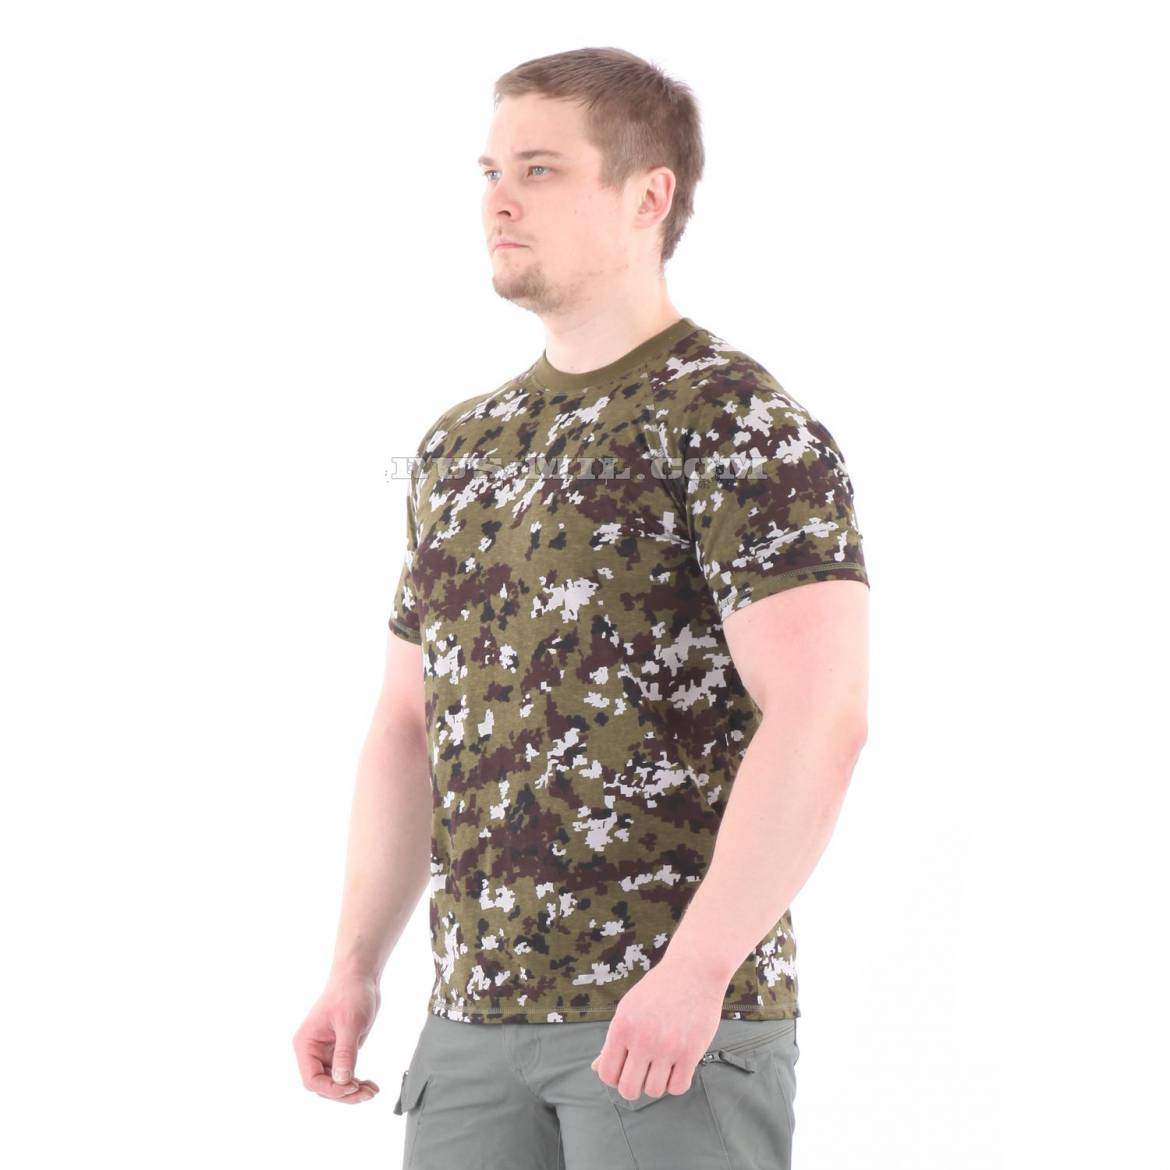 Russian-Cotton-T-Shirt-in-Tsifra-2-for-sale.jpg